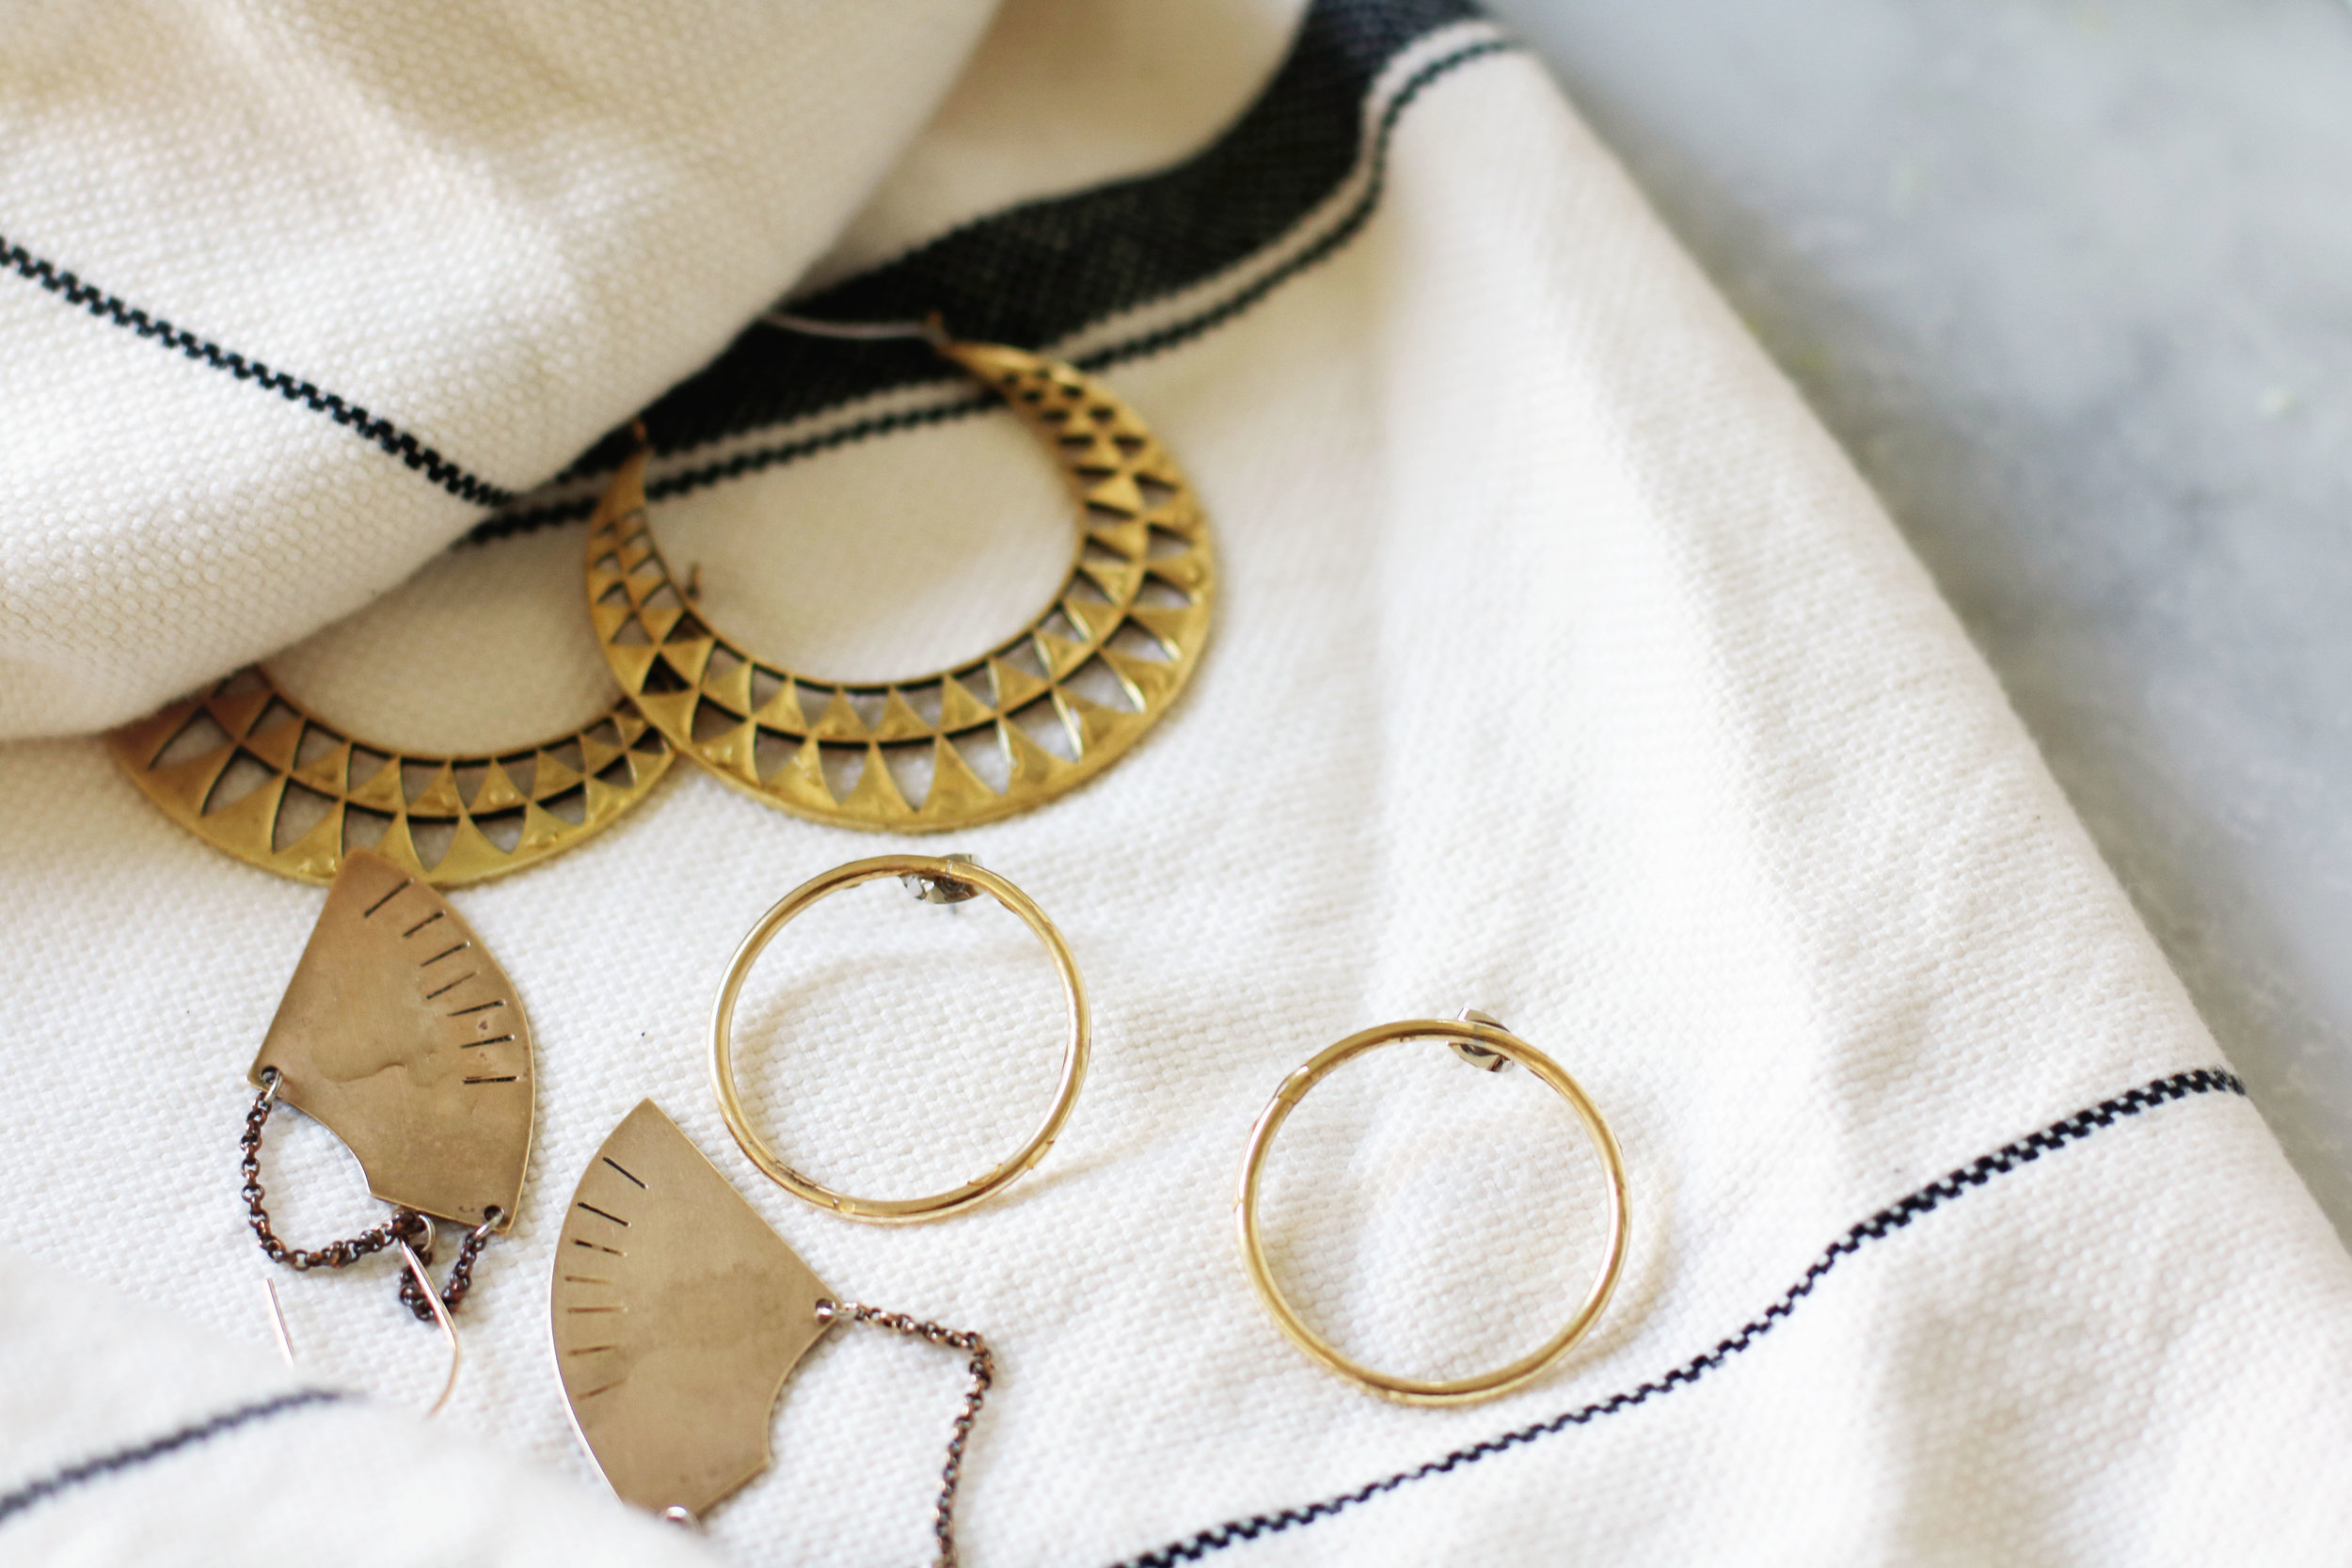 Make It New Clean Your Brass Jewelry With Lemon And Baking Soda Birds Of A Thread